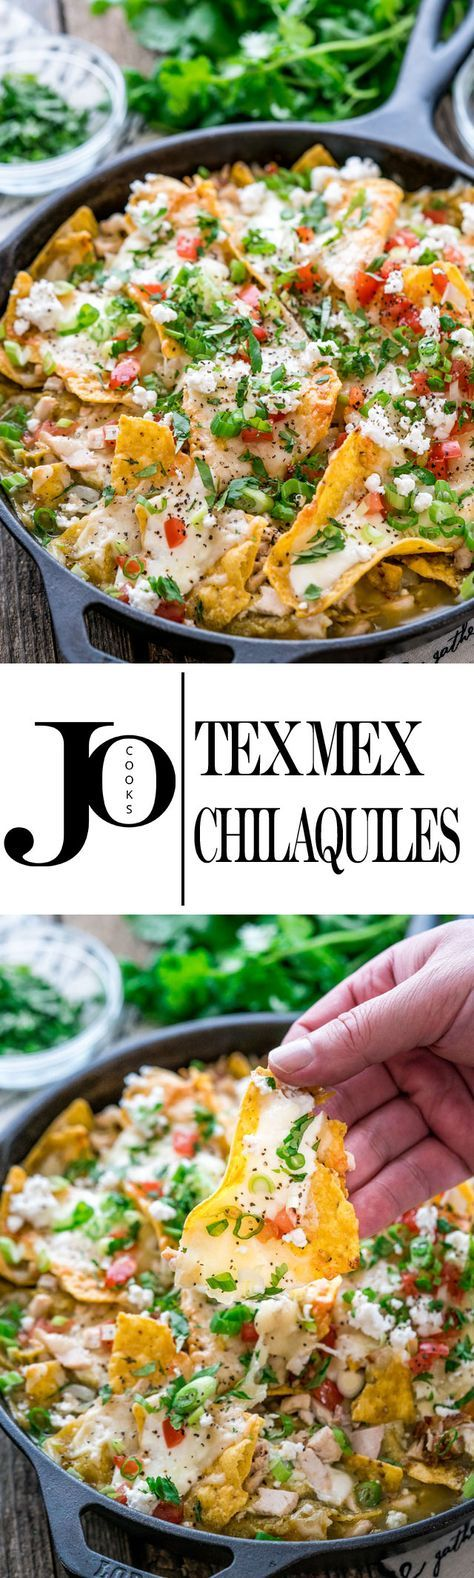 These Tex Mex Chilaquiles can be on your table in only 20 minutes and are perfect for breakfast or brunch! These chilaquiles are loaded with turkey and smothered with cheese and green enchilada sauce.